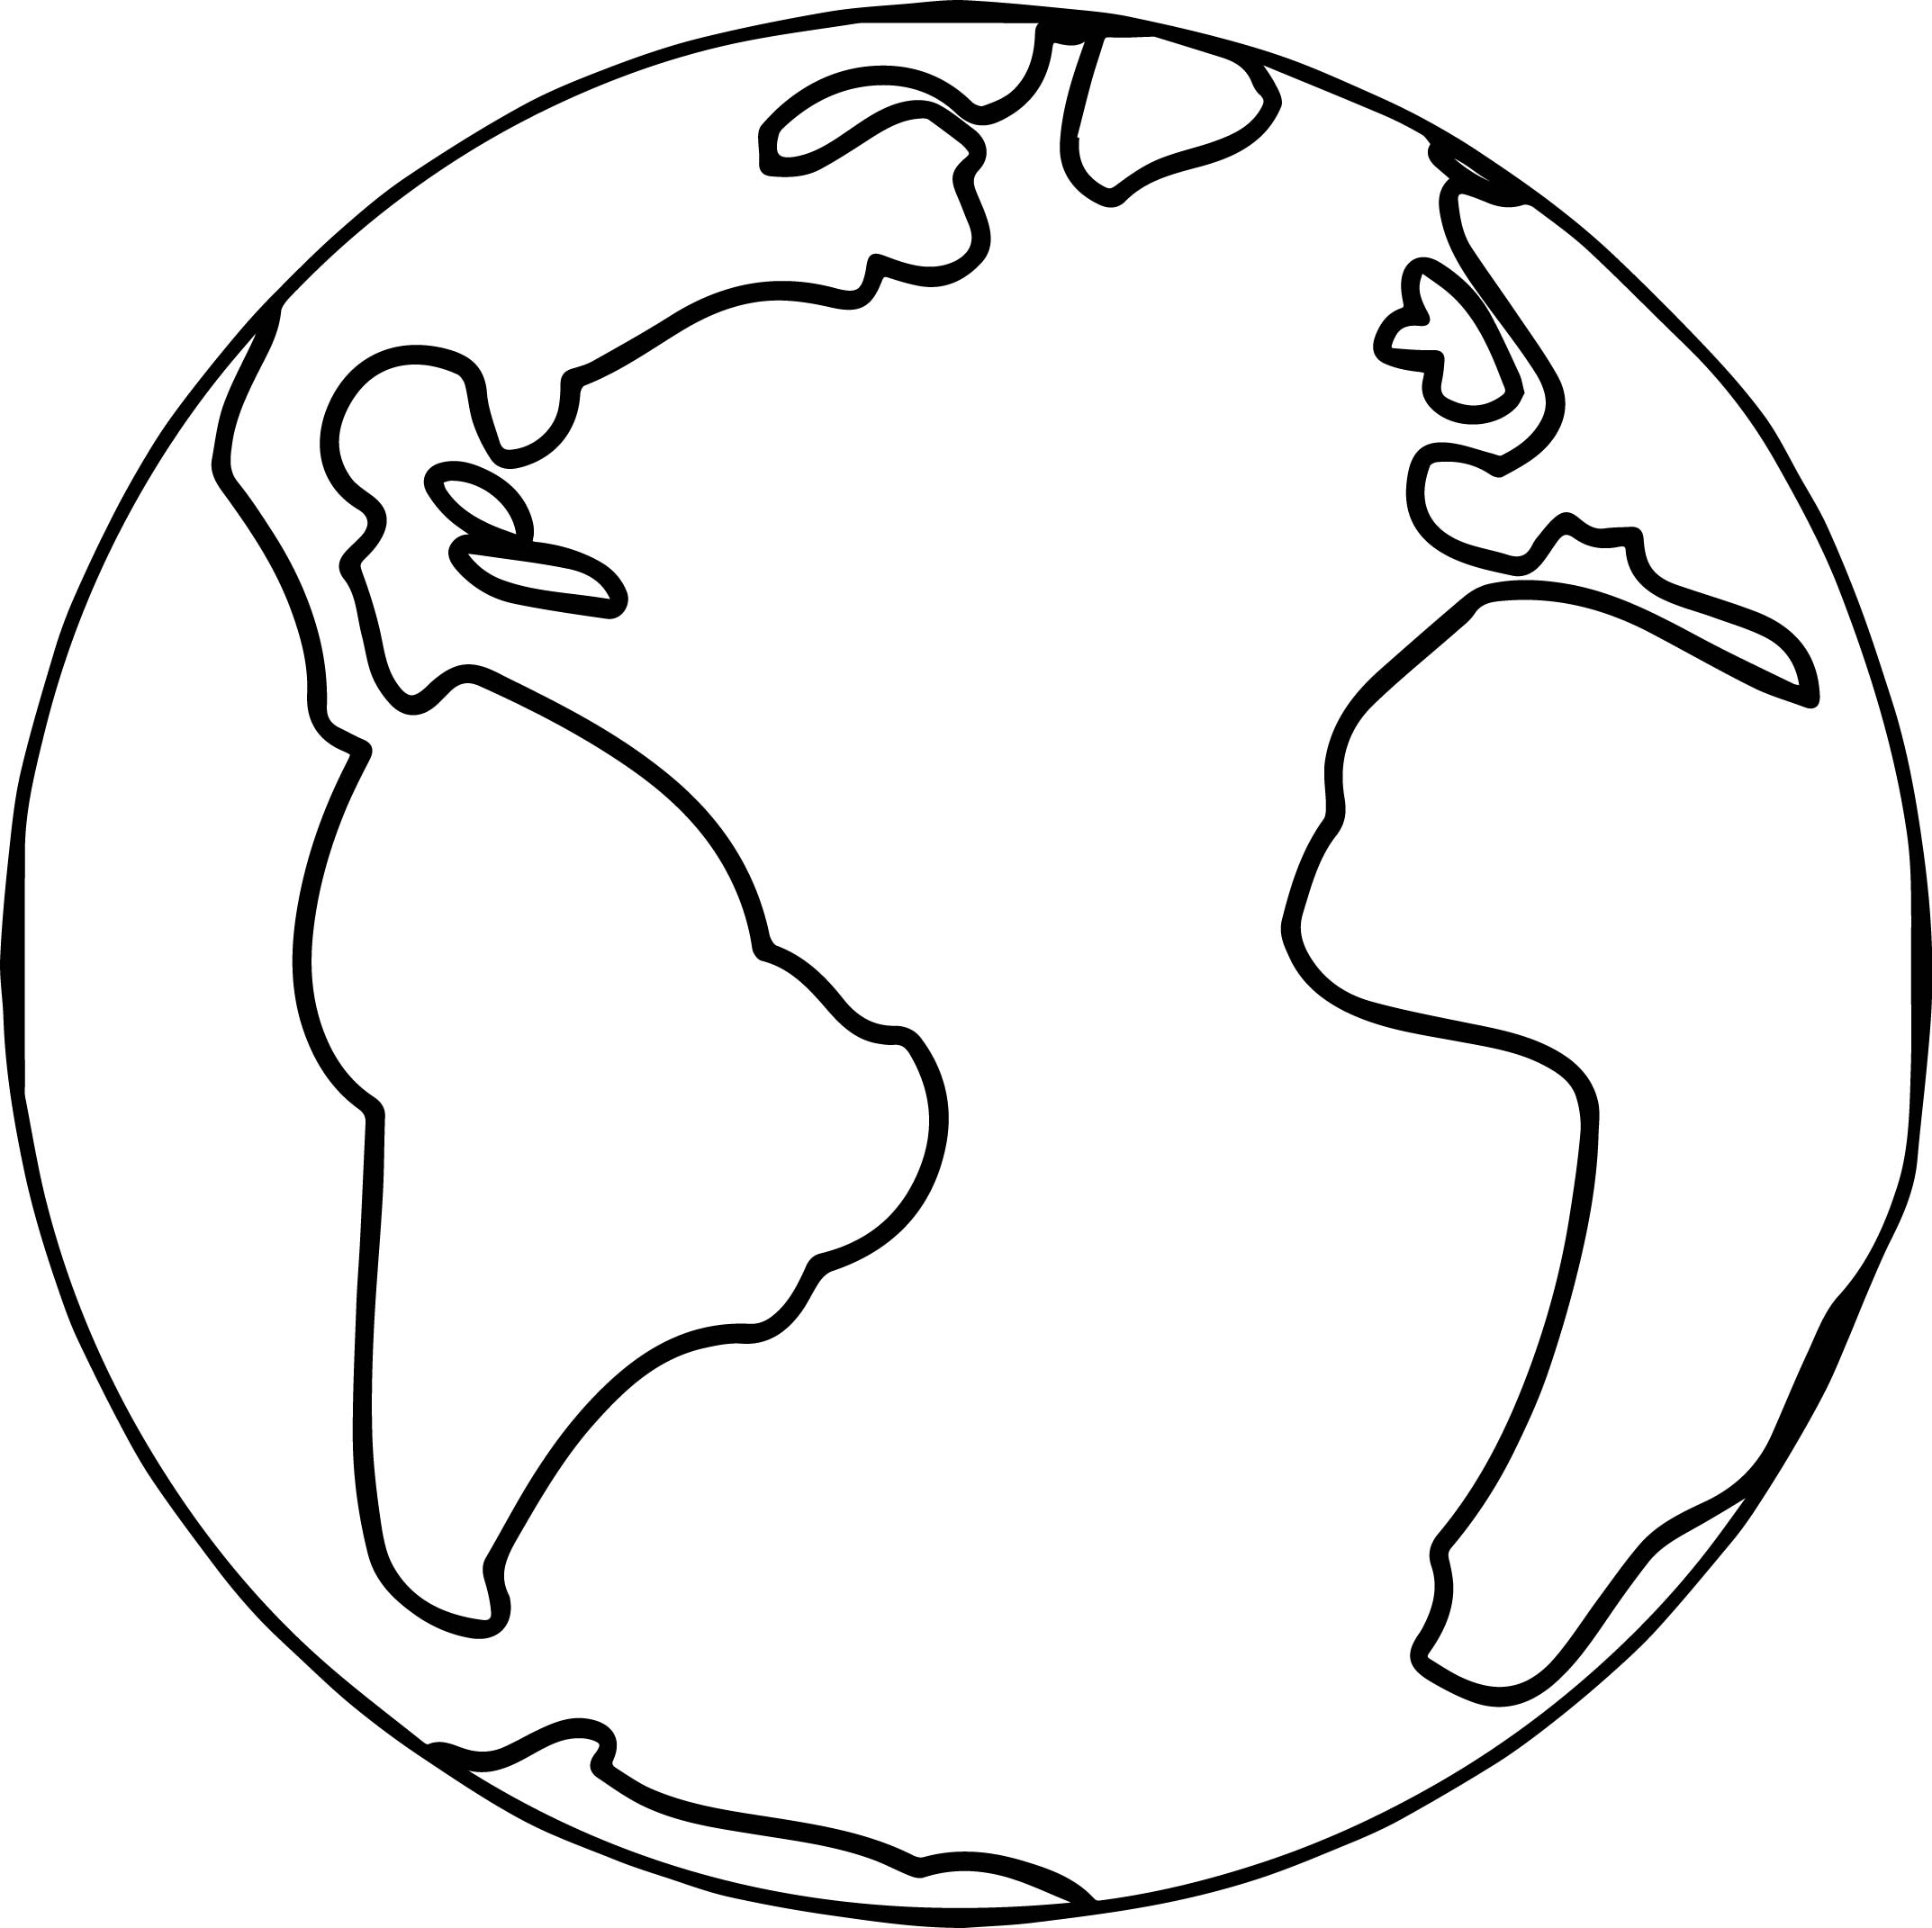 world coloring pages printable children around the world coloring pages to download and coloring pages printable world